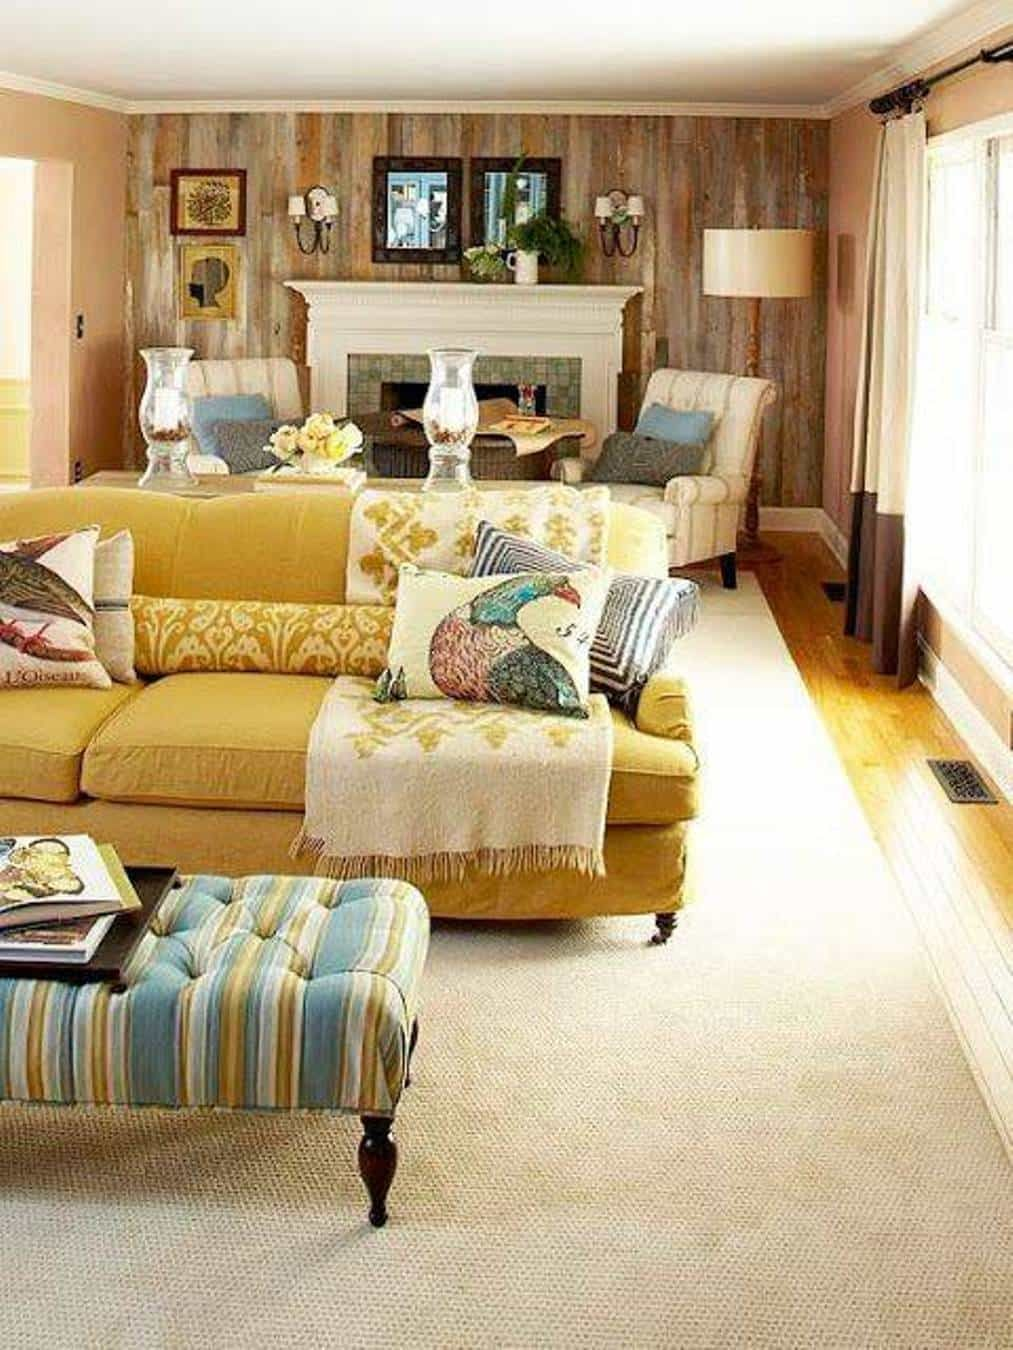 Small Narrow Living Room Decorating Ideas: Narrow Living Room Design With Yellow Sofa And Fireplace